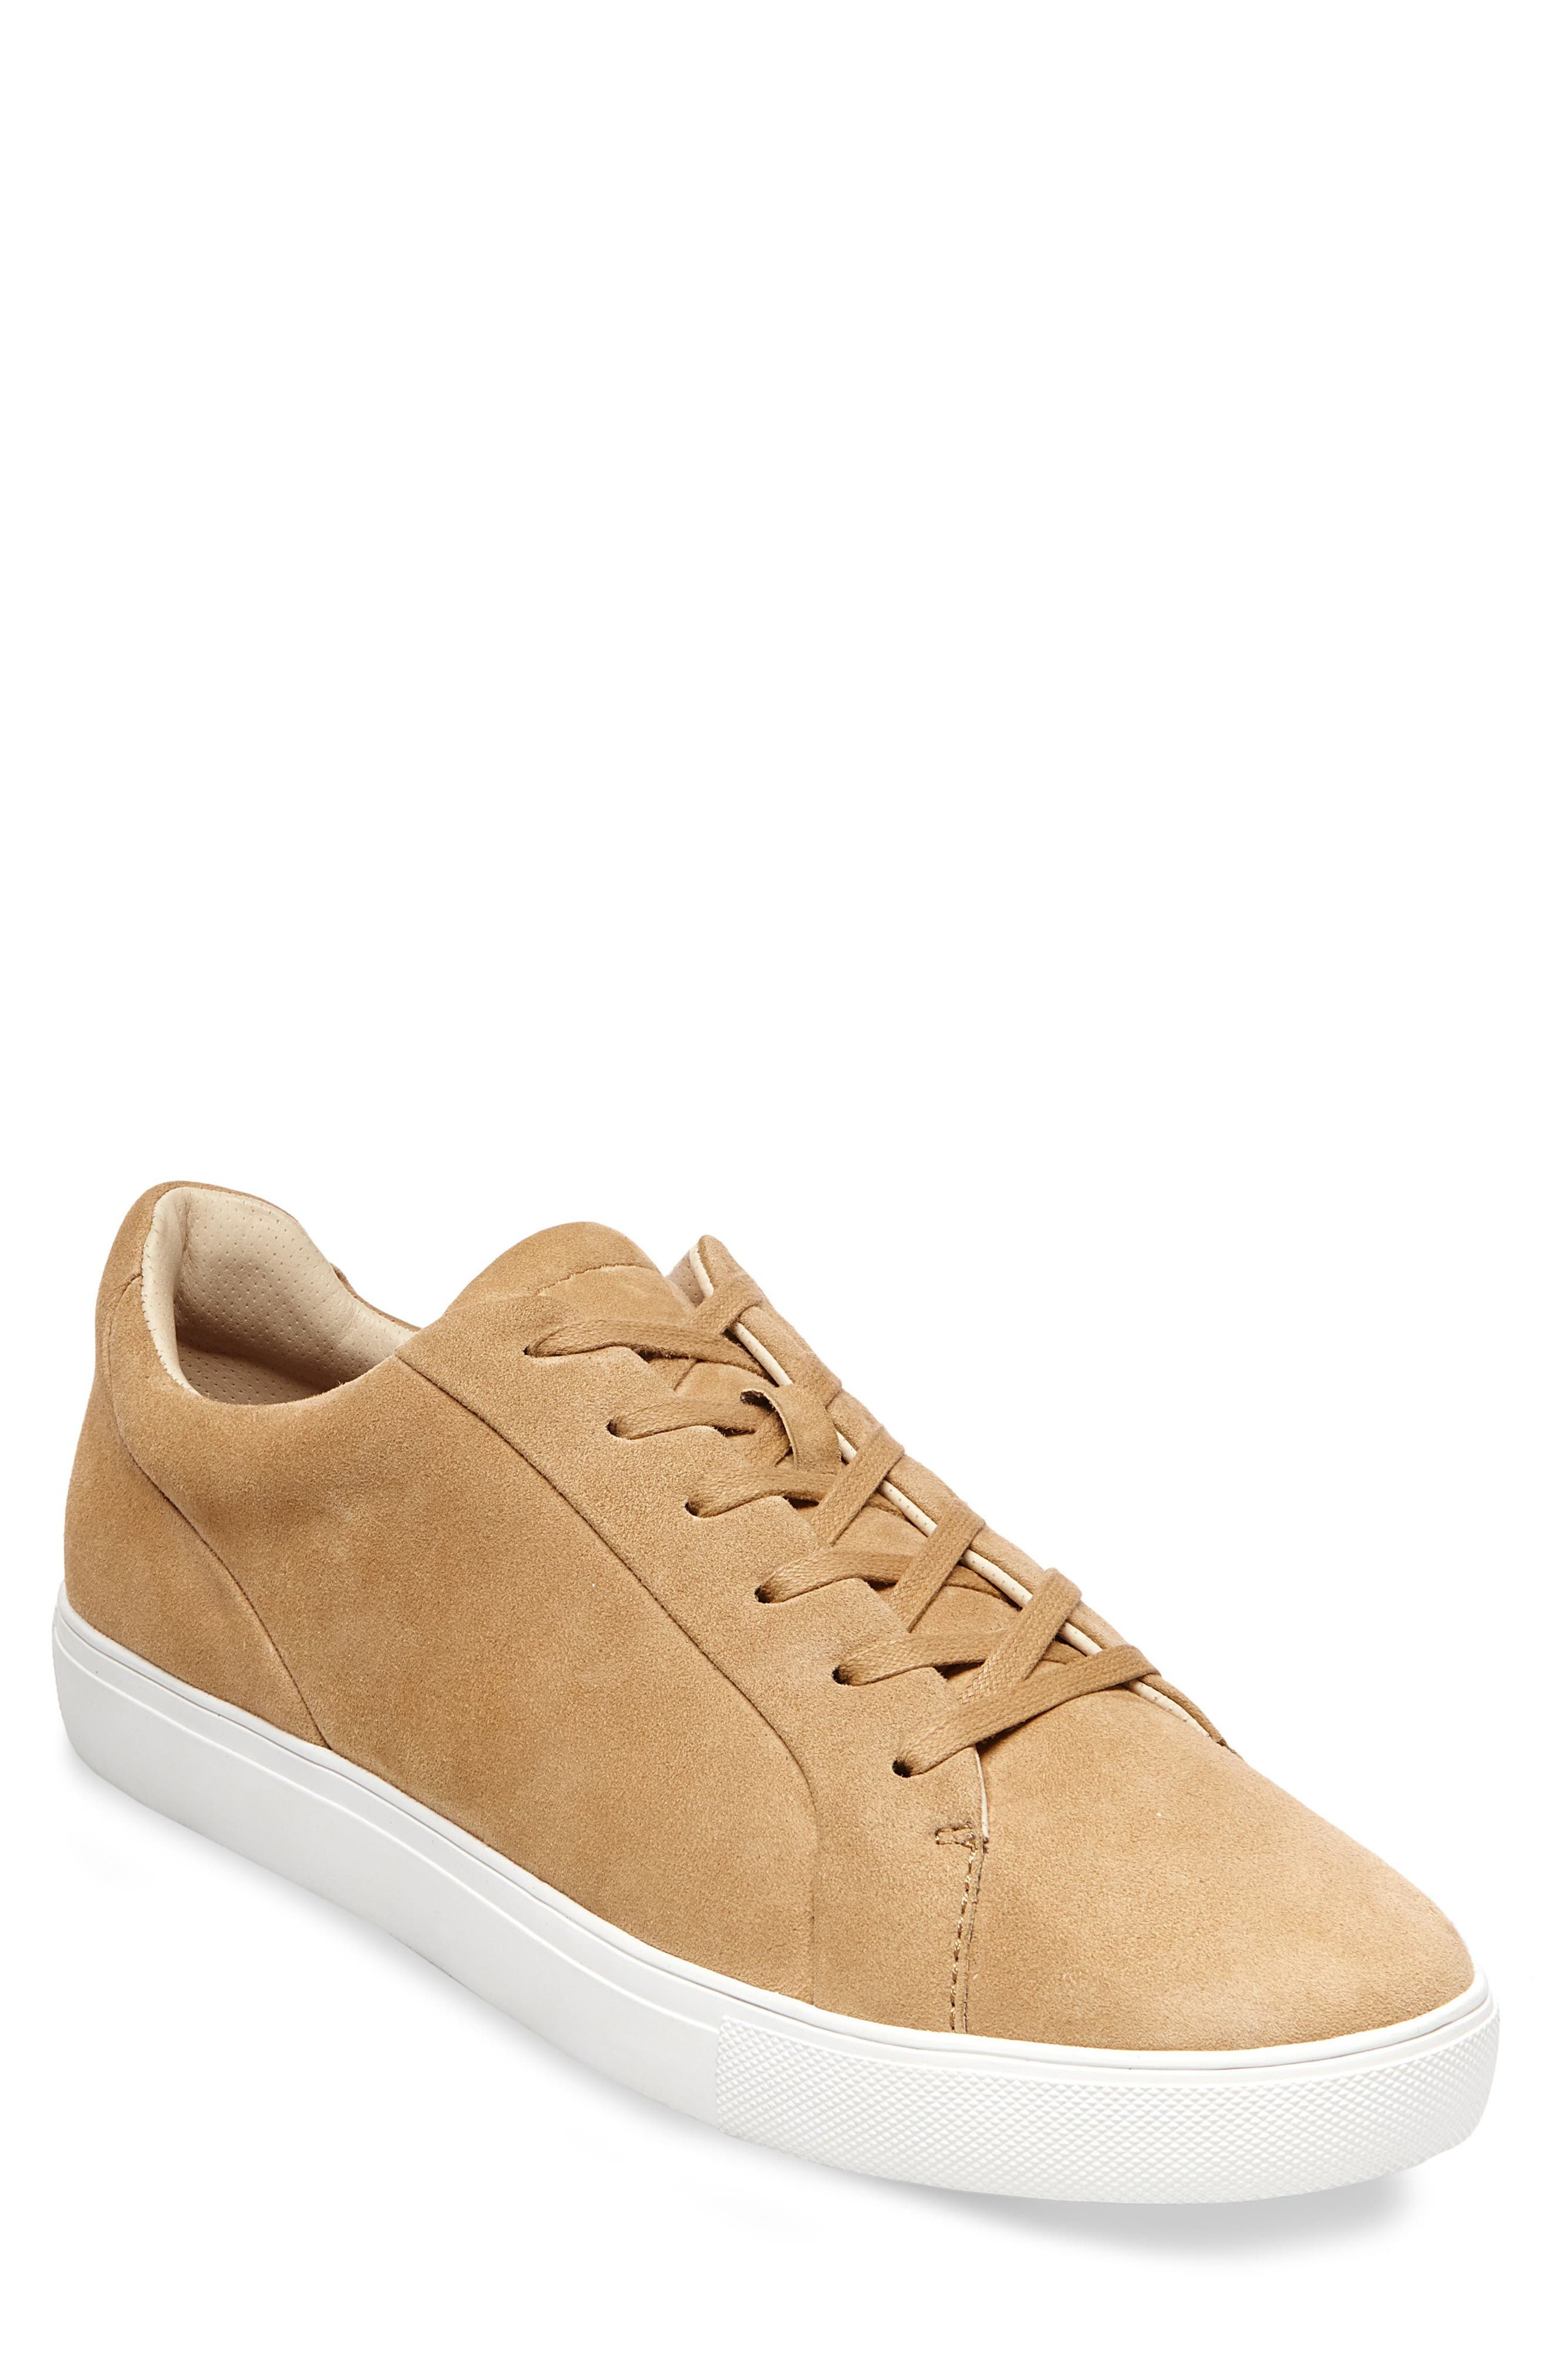 x GQ James Sneaker,                             Main thumbnail 1, color,                             Tan Suede